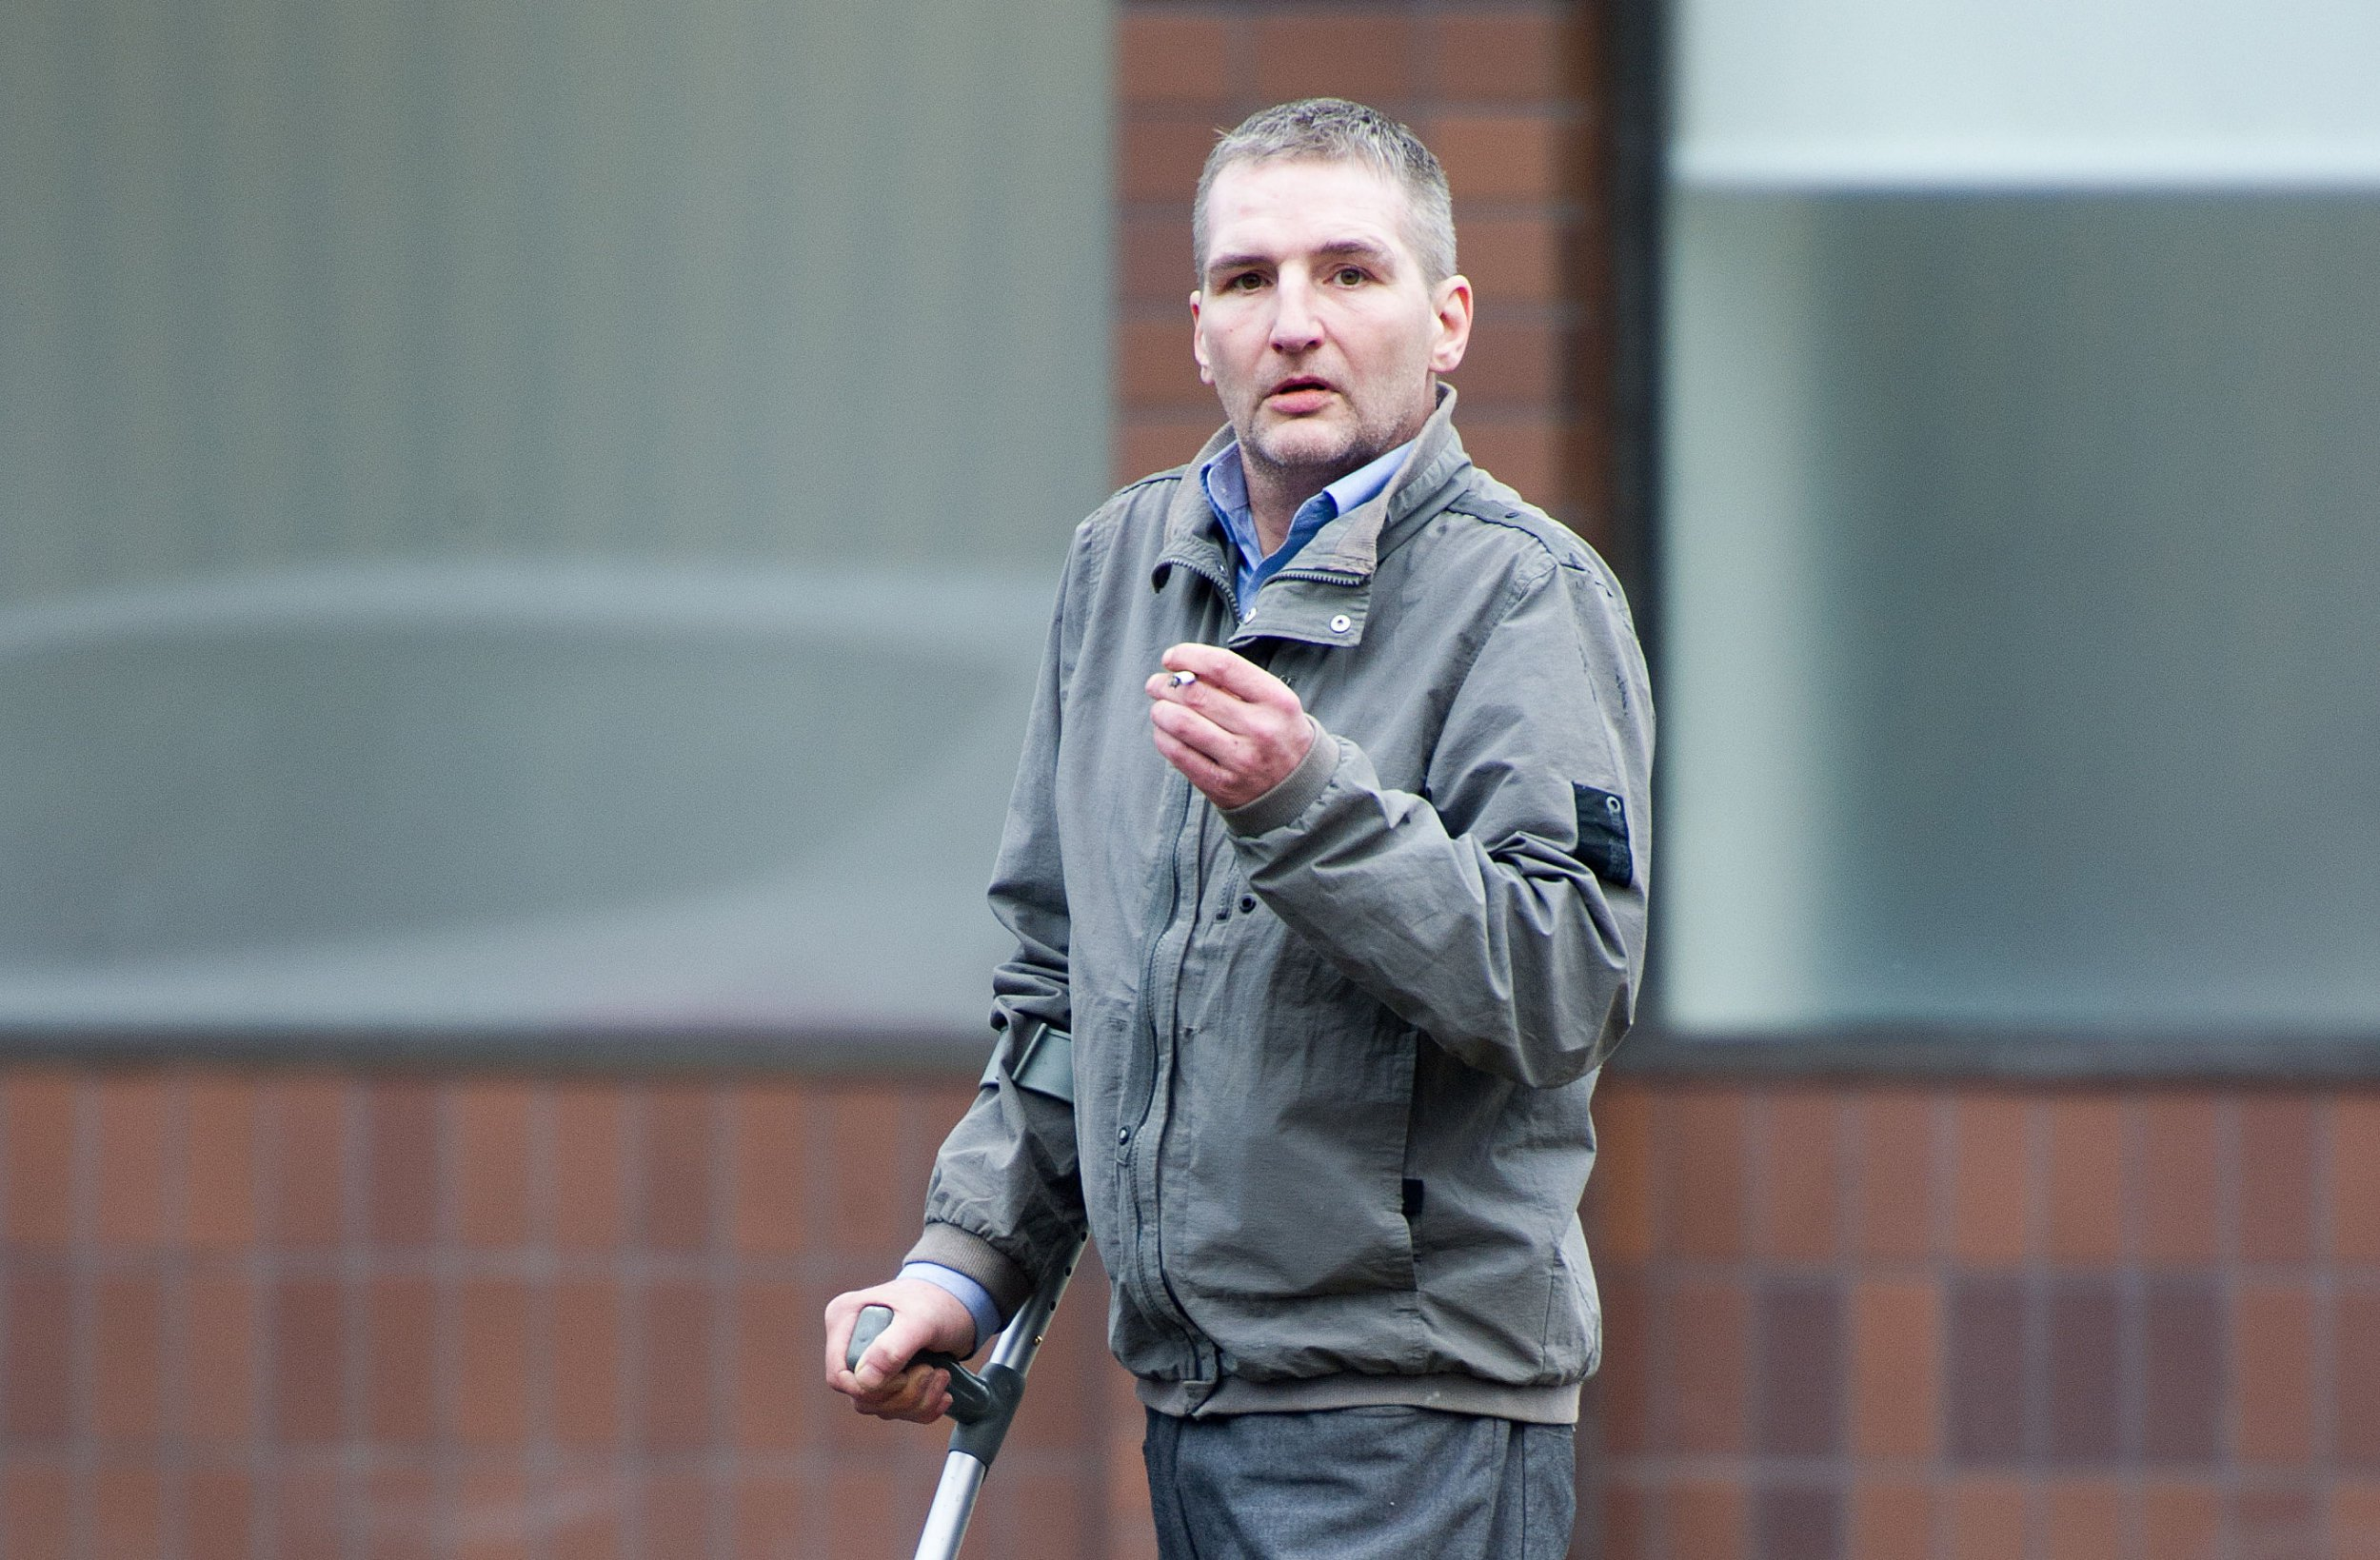 Pic shows actor James Elder at the High Court Glasgow. He denies raping a 19 year old girl who subsequently took her own life. He denies all charges. Trial continues. See Glasgow Courts. Pic by Iain McLellan/Spindrift. !!!!! No ID issues !!!!!!